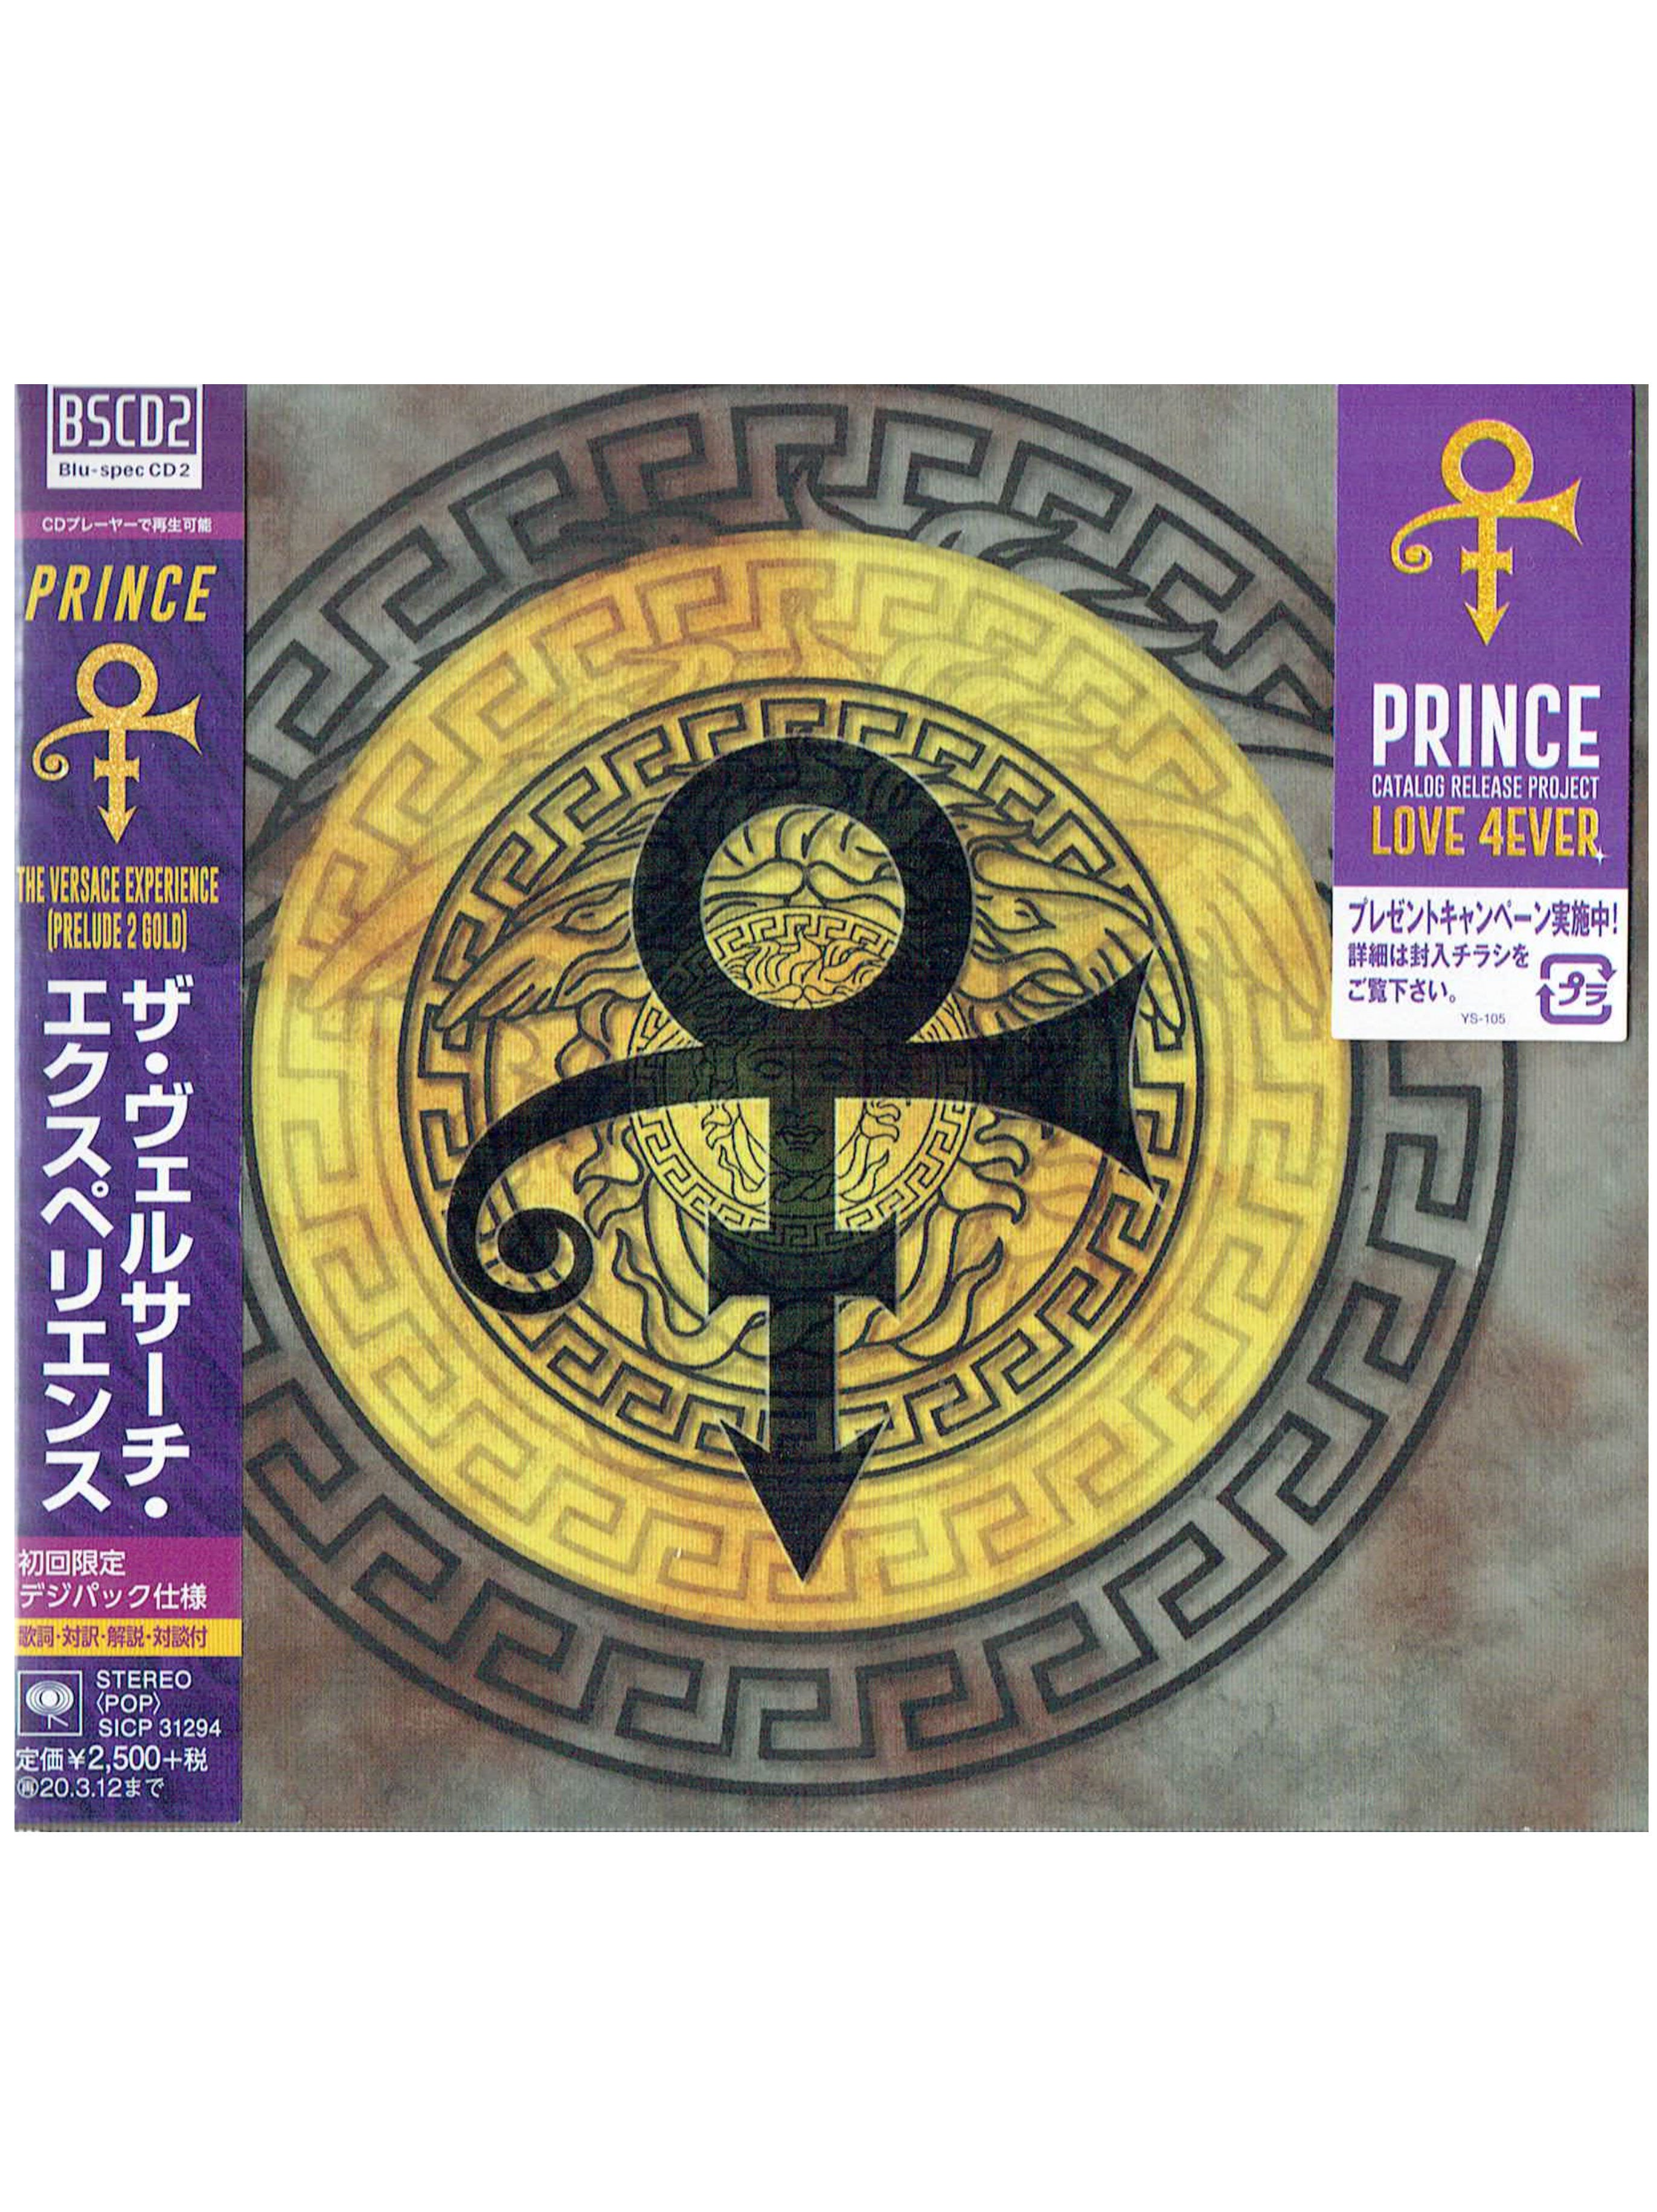 Prince The Versace Experience CD Album JAPAN Blu-Spec C2 Sony Music NEW